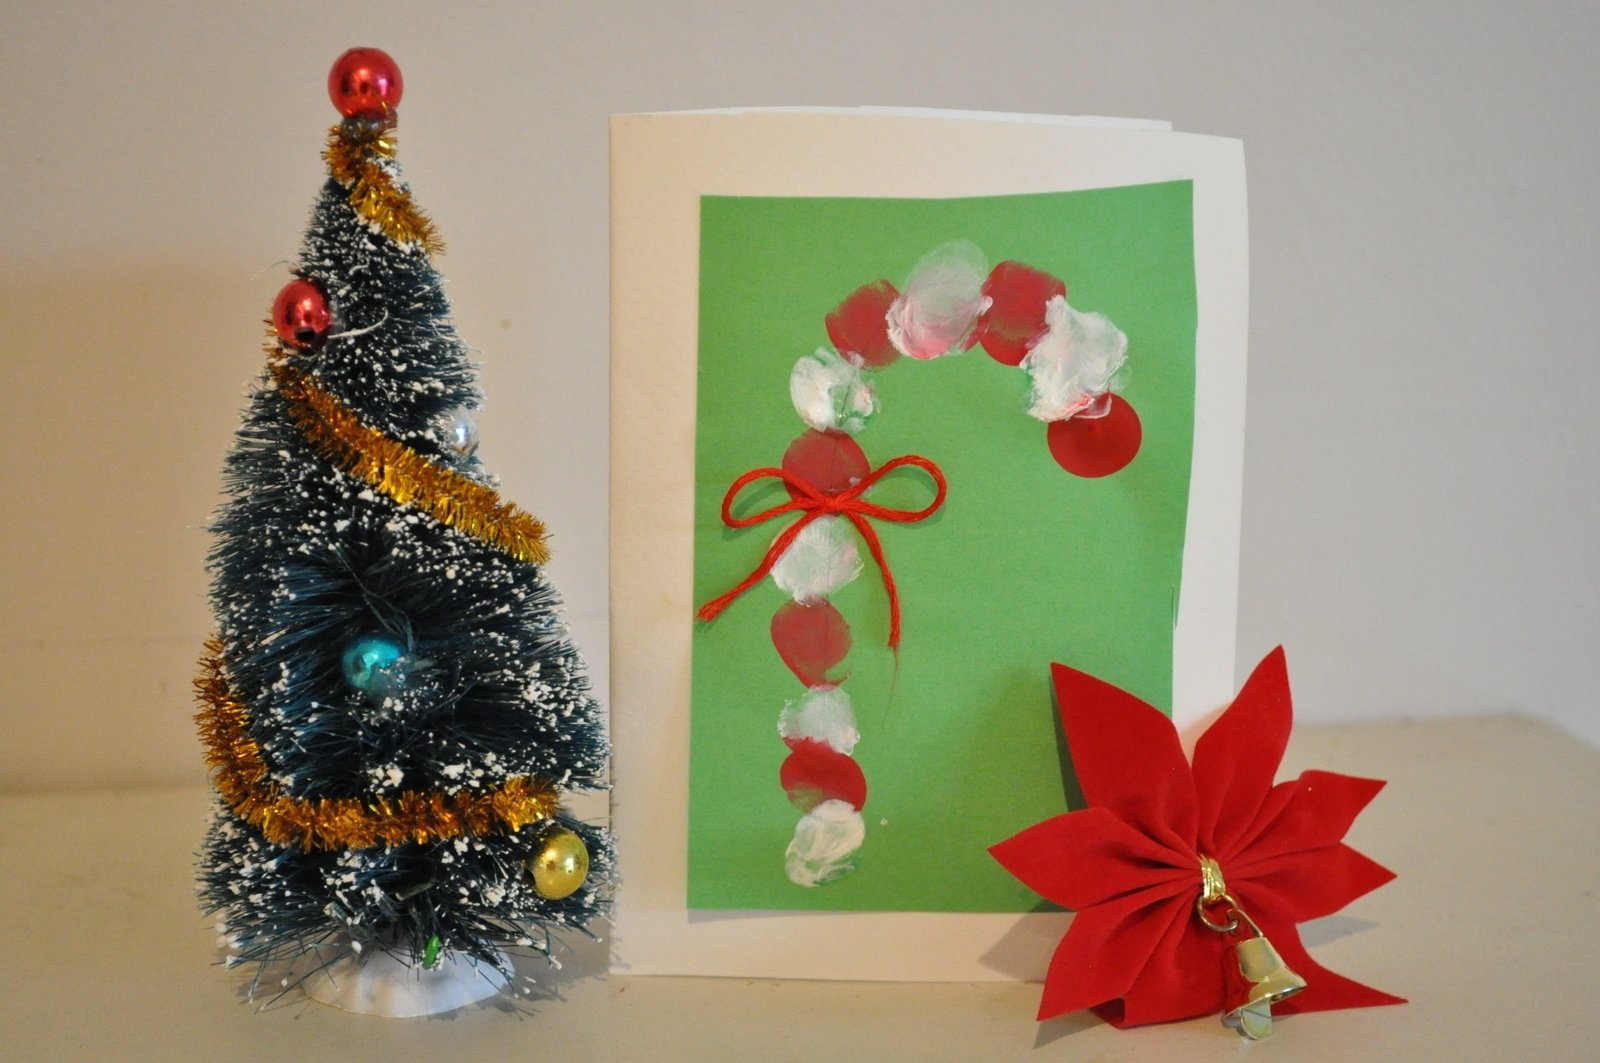 10 Cute Christmas Card Photo Ideas For Kids homemade christmas card ideas to do with kids e280a2 brisbane kids 7 2020